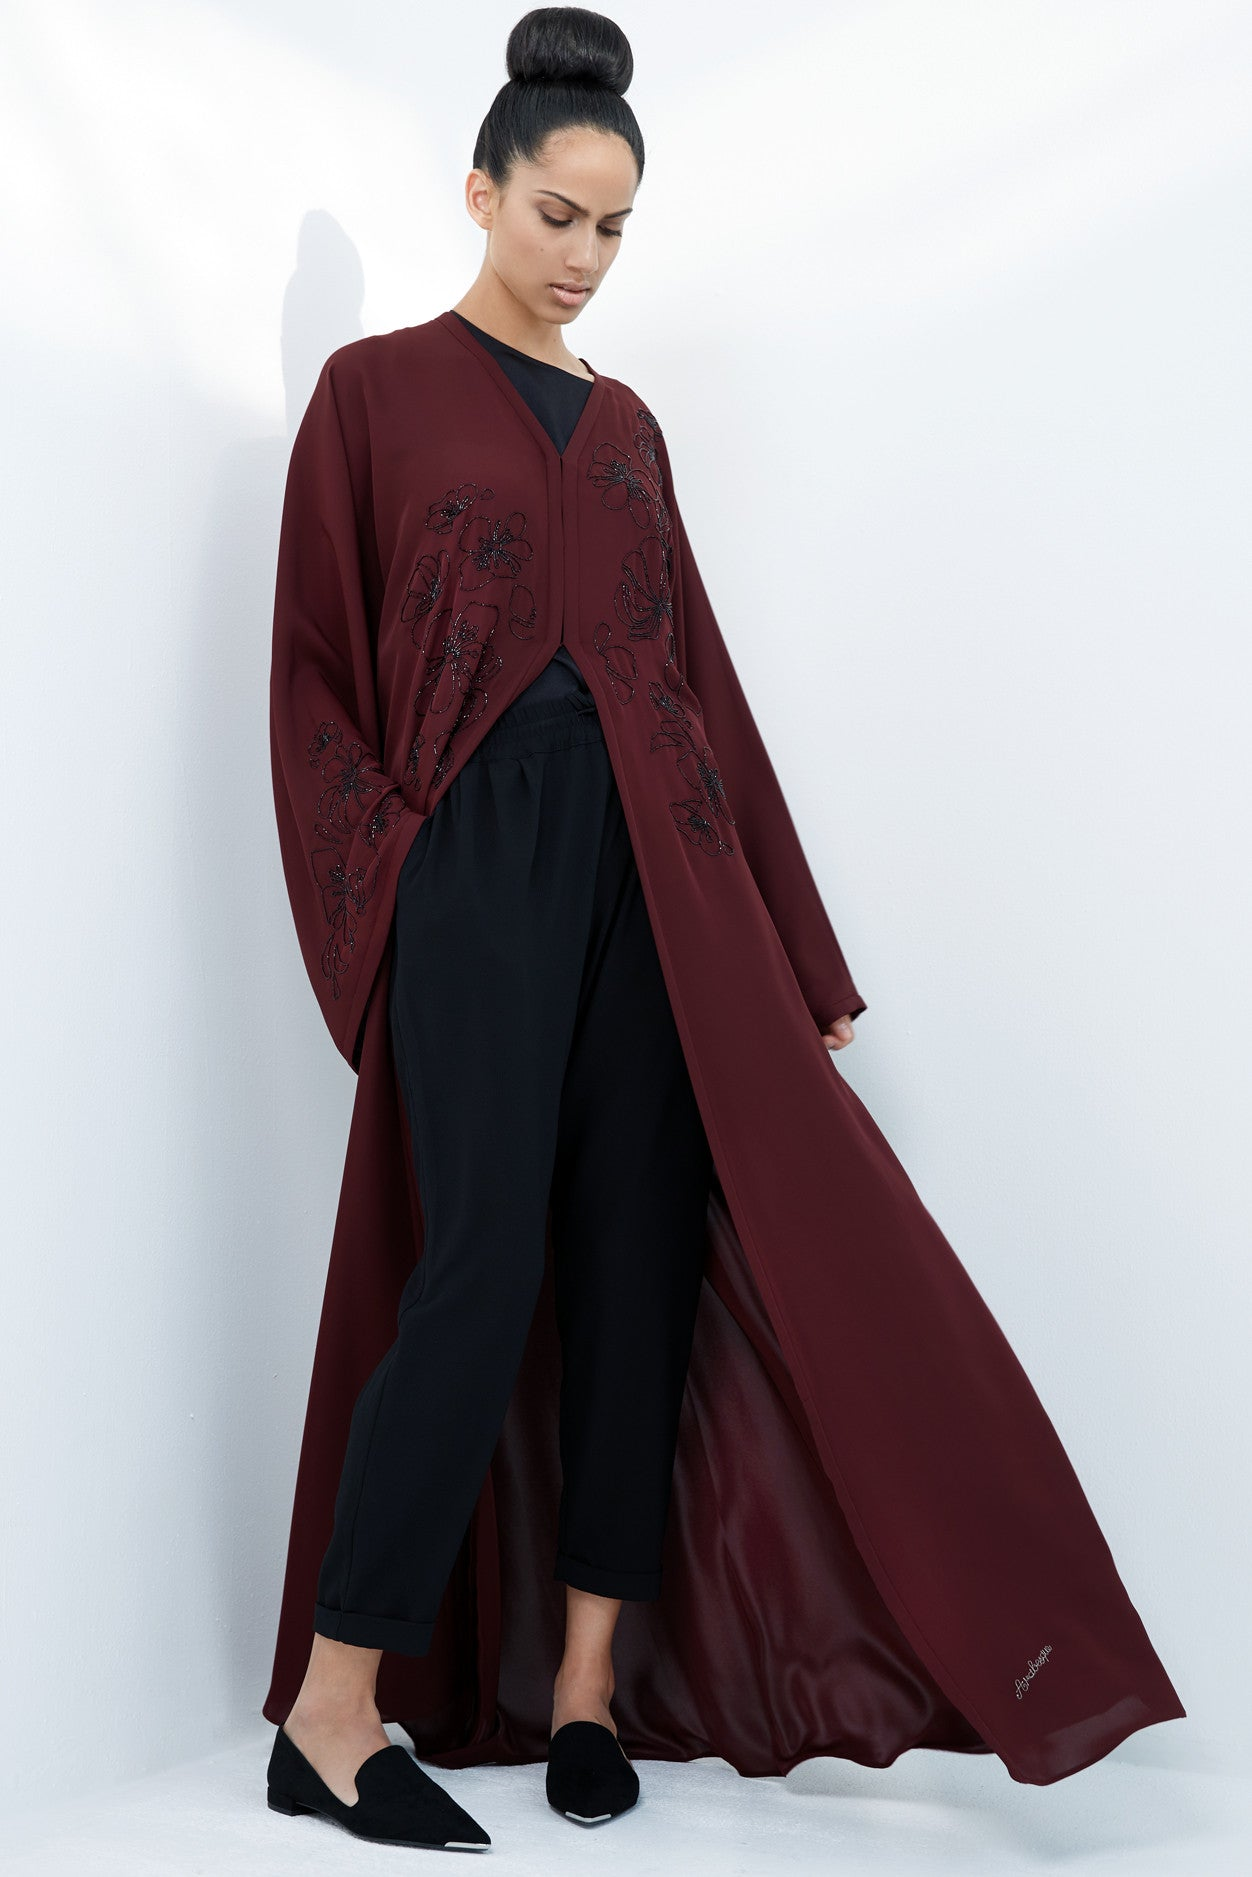 MARIELLE - ACR1915A - Arabesque kimono cut abaya with flower motif beads embroidery on front and one sleeve only.